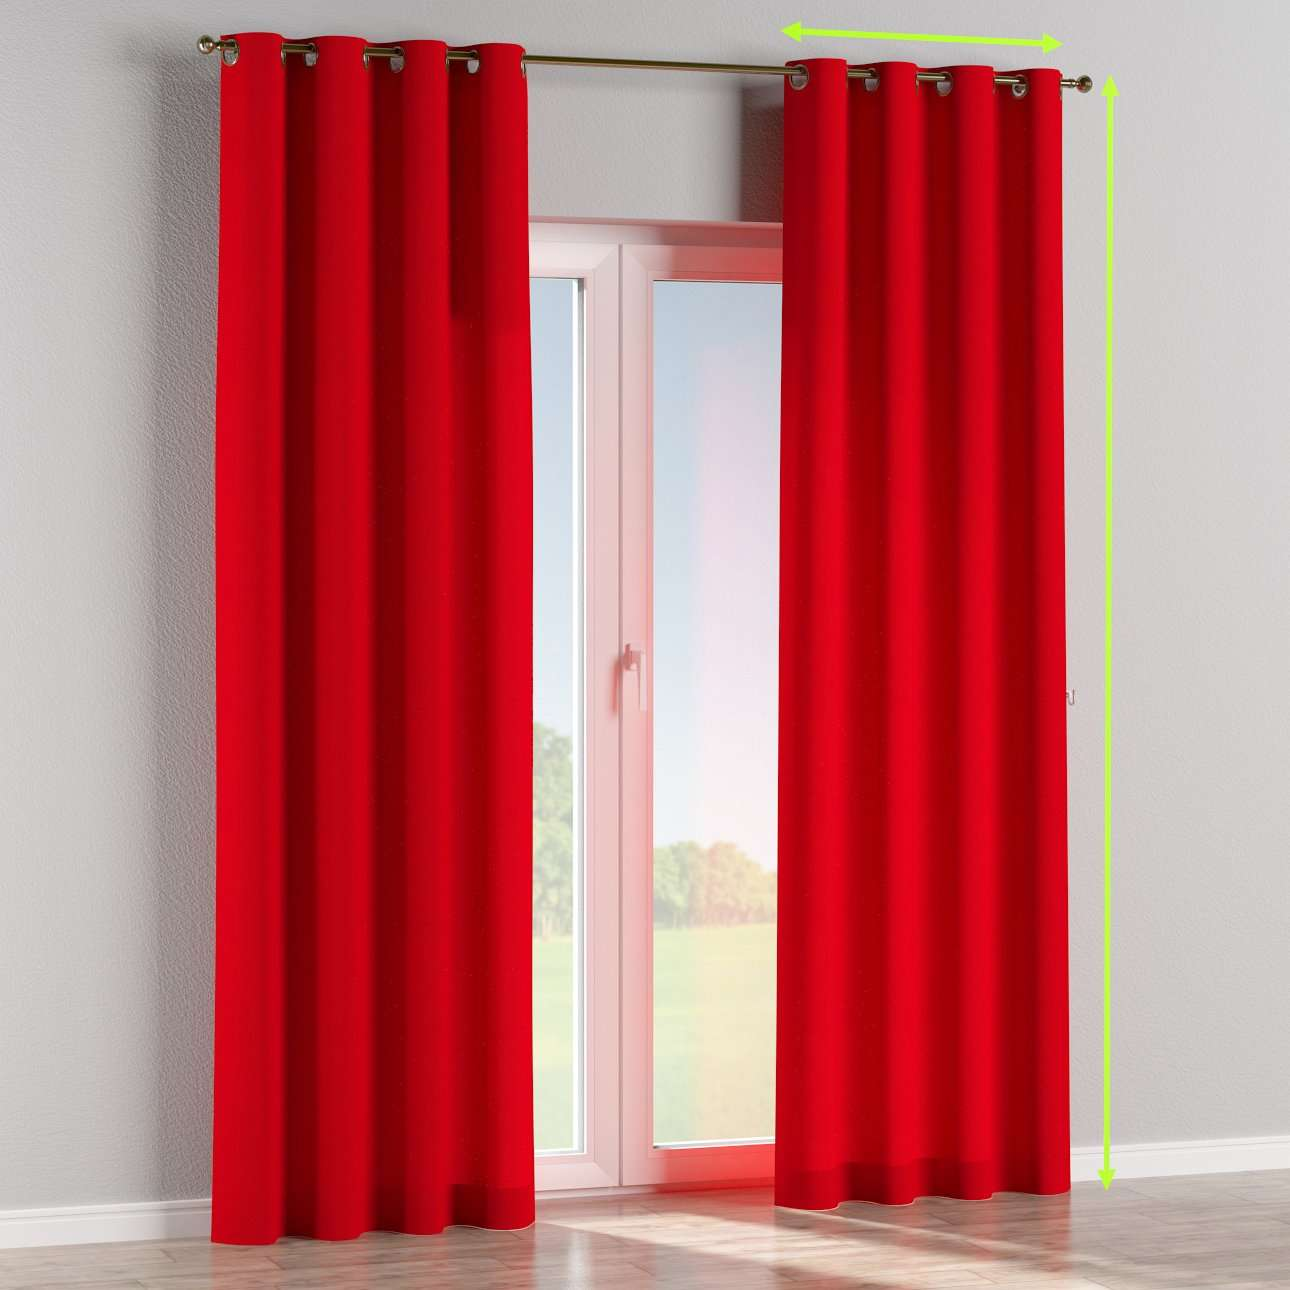 Eyelet curtains in collection Chenille, fabric: 702-24